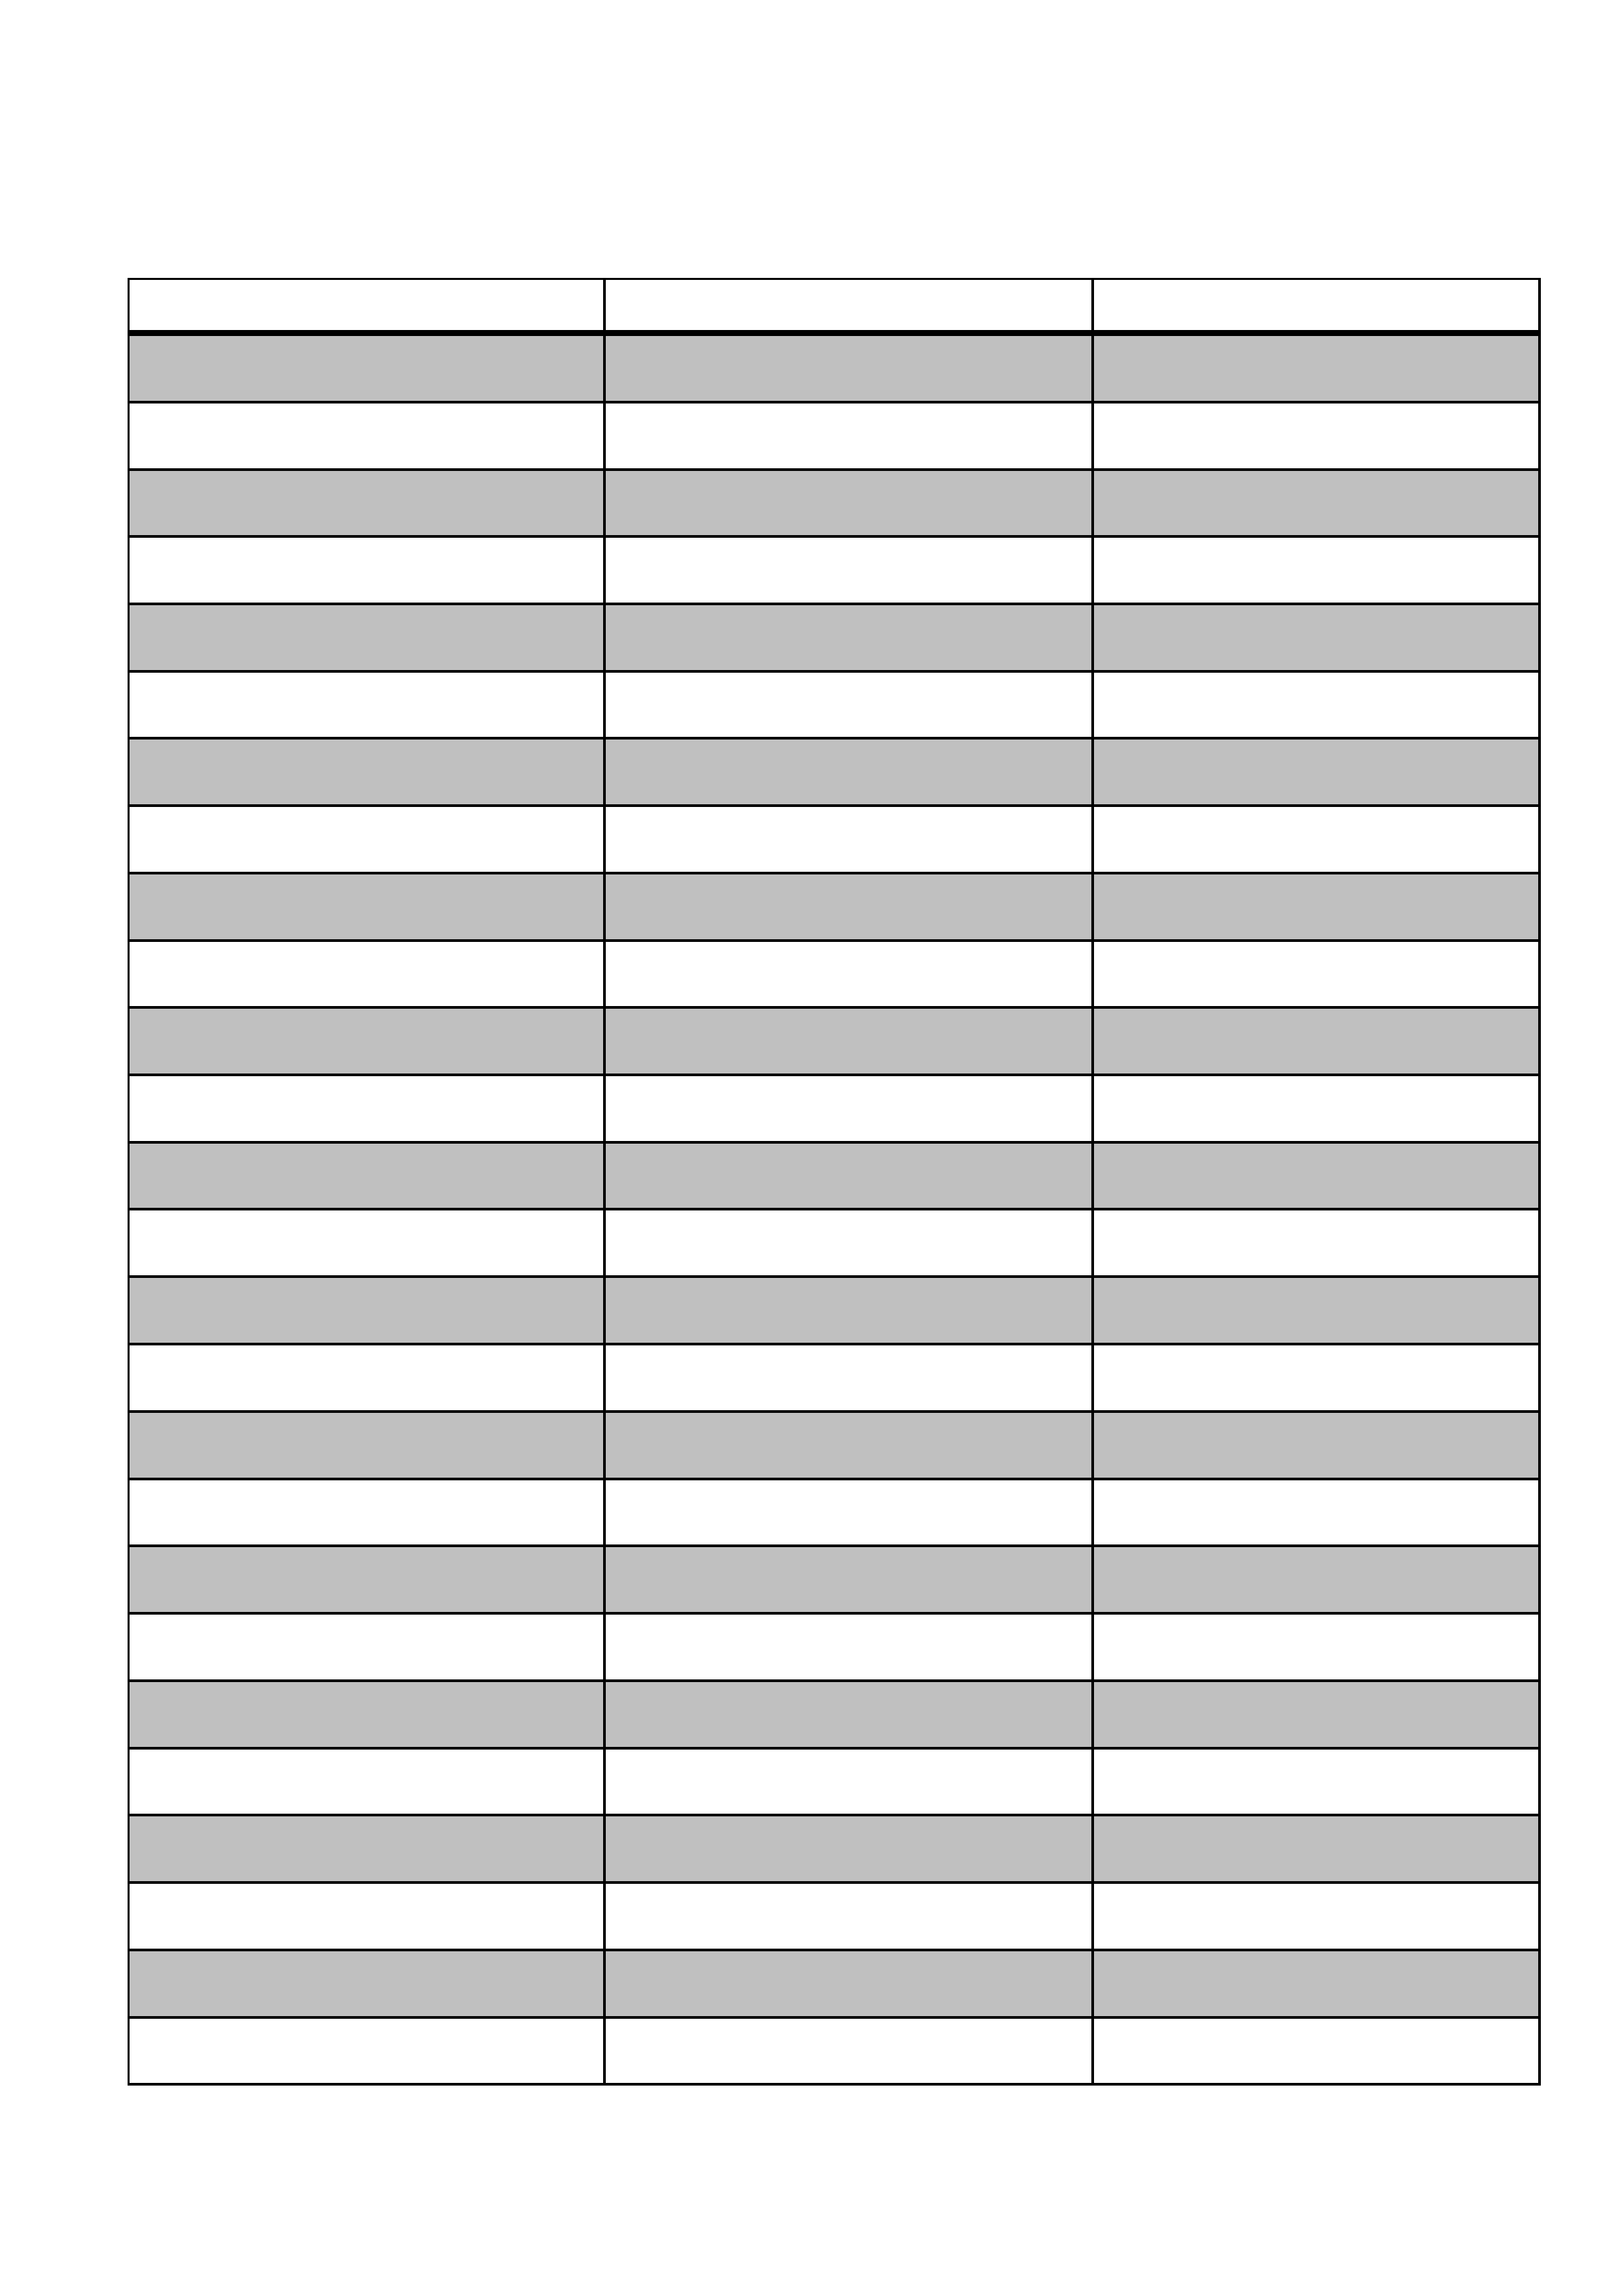 Sign In Sheet Example Free Download